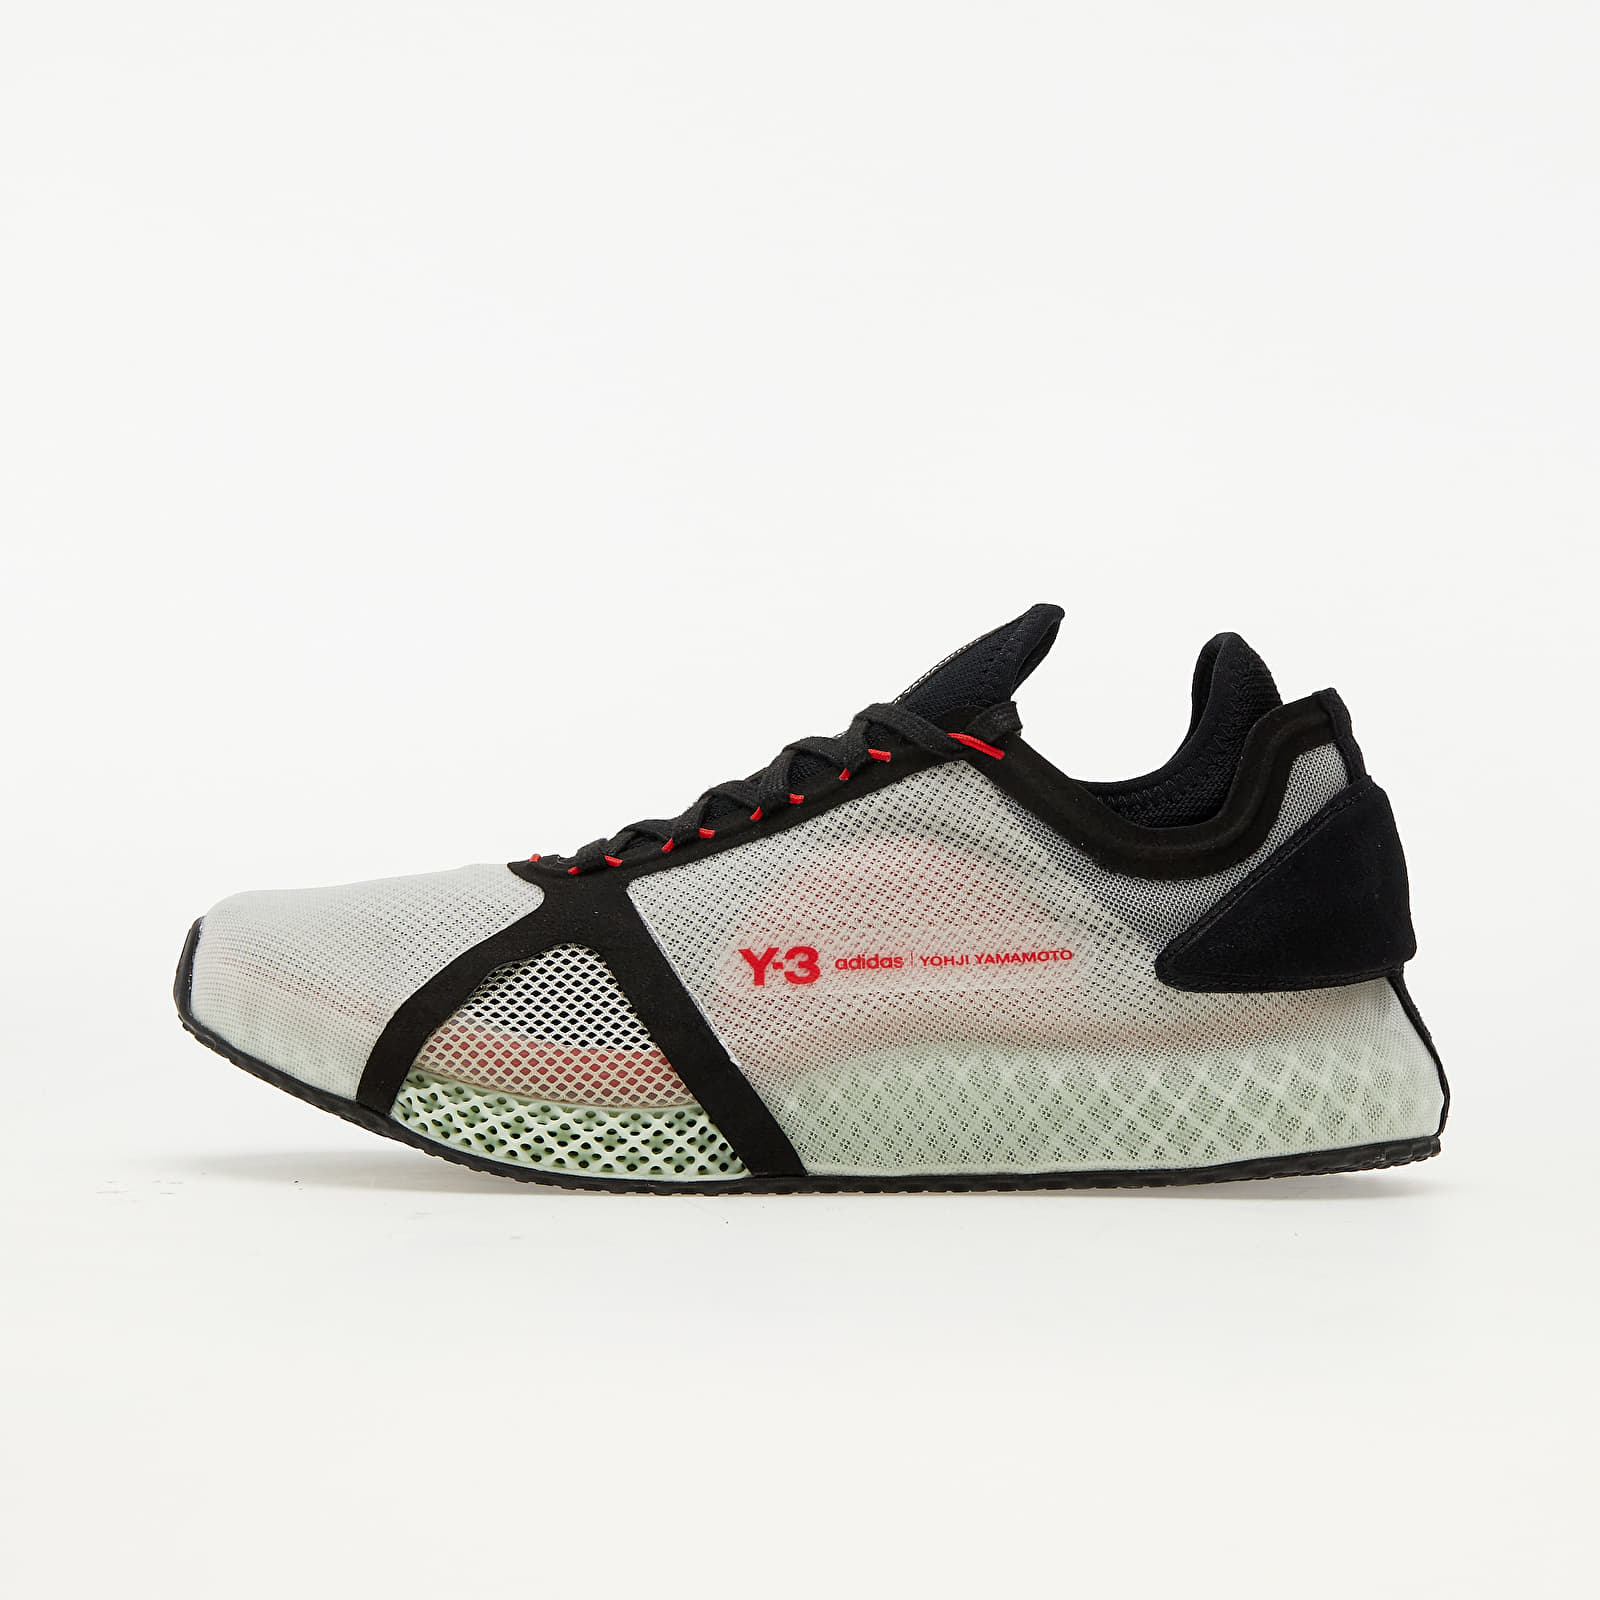 Y-3 Runner 4D Iow Clear Brown/ Black/ Red FZ4501